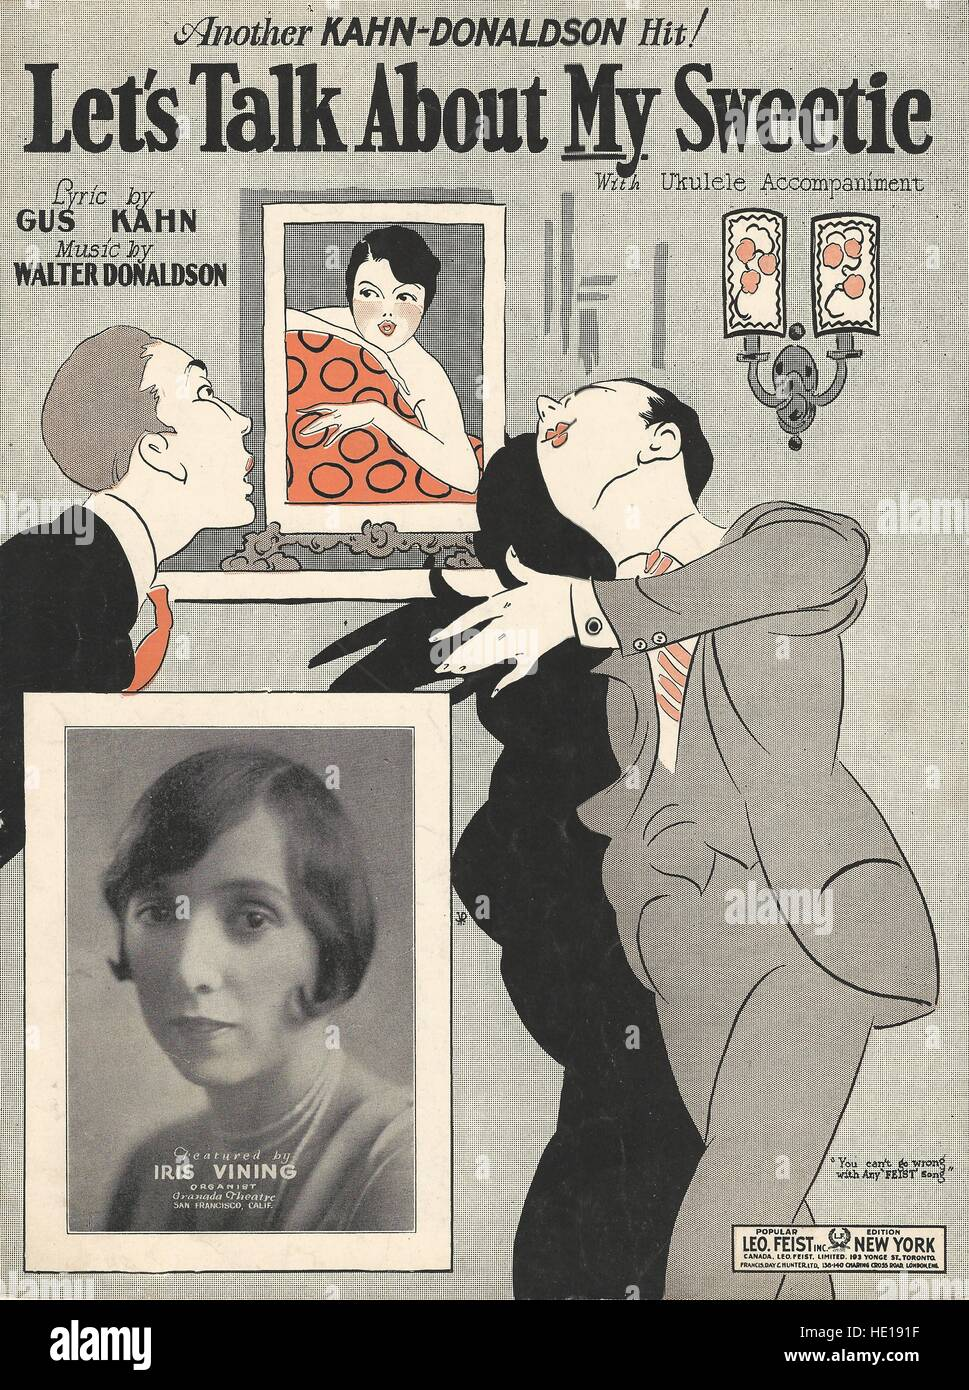 'Let's Talk About My Sweetie' 1925 Sheet Music Cover - Stock Image